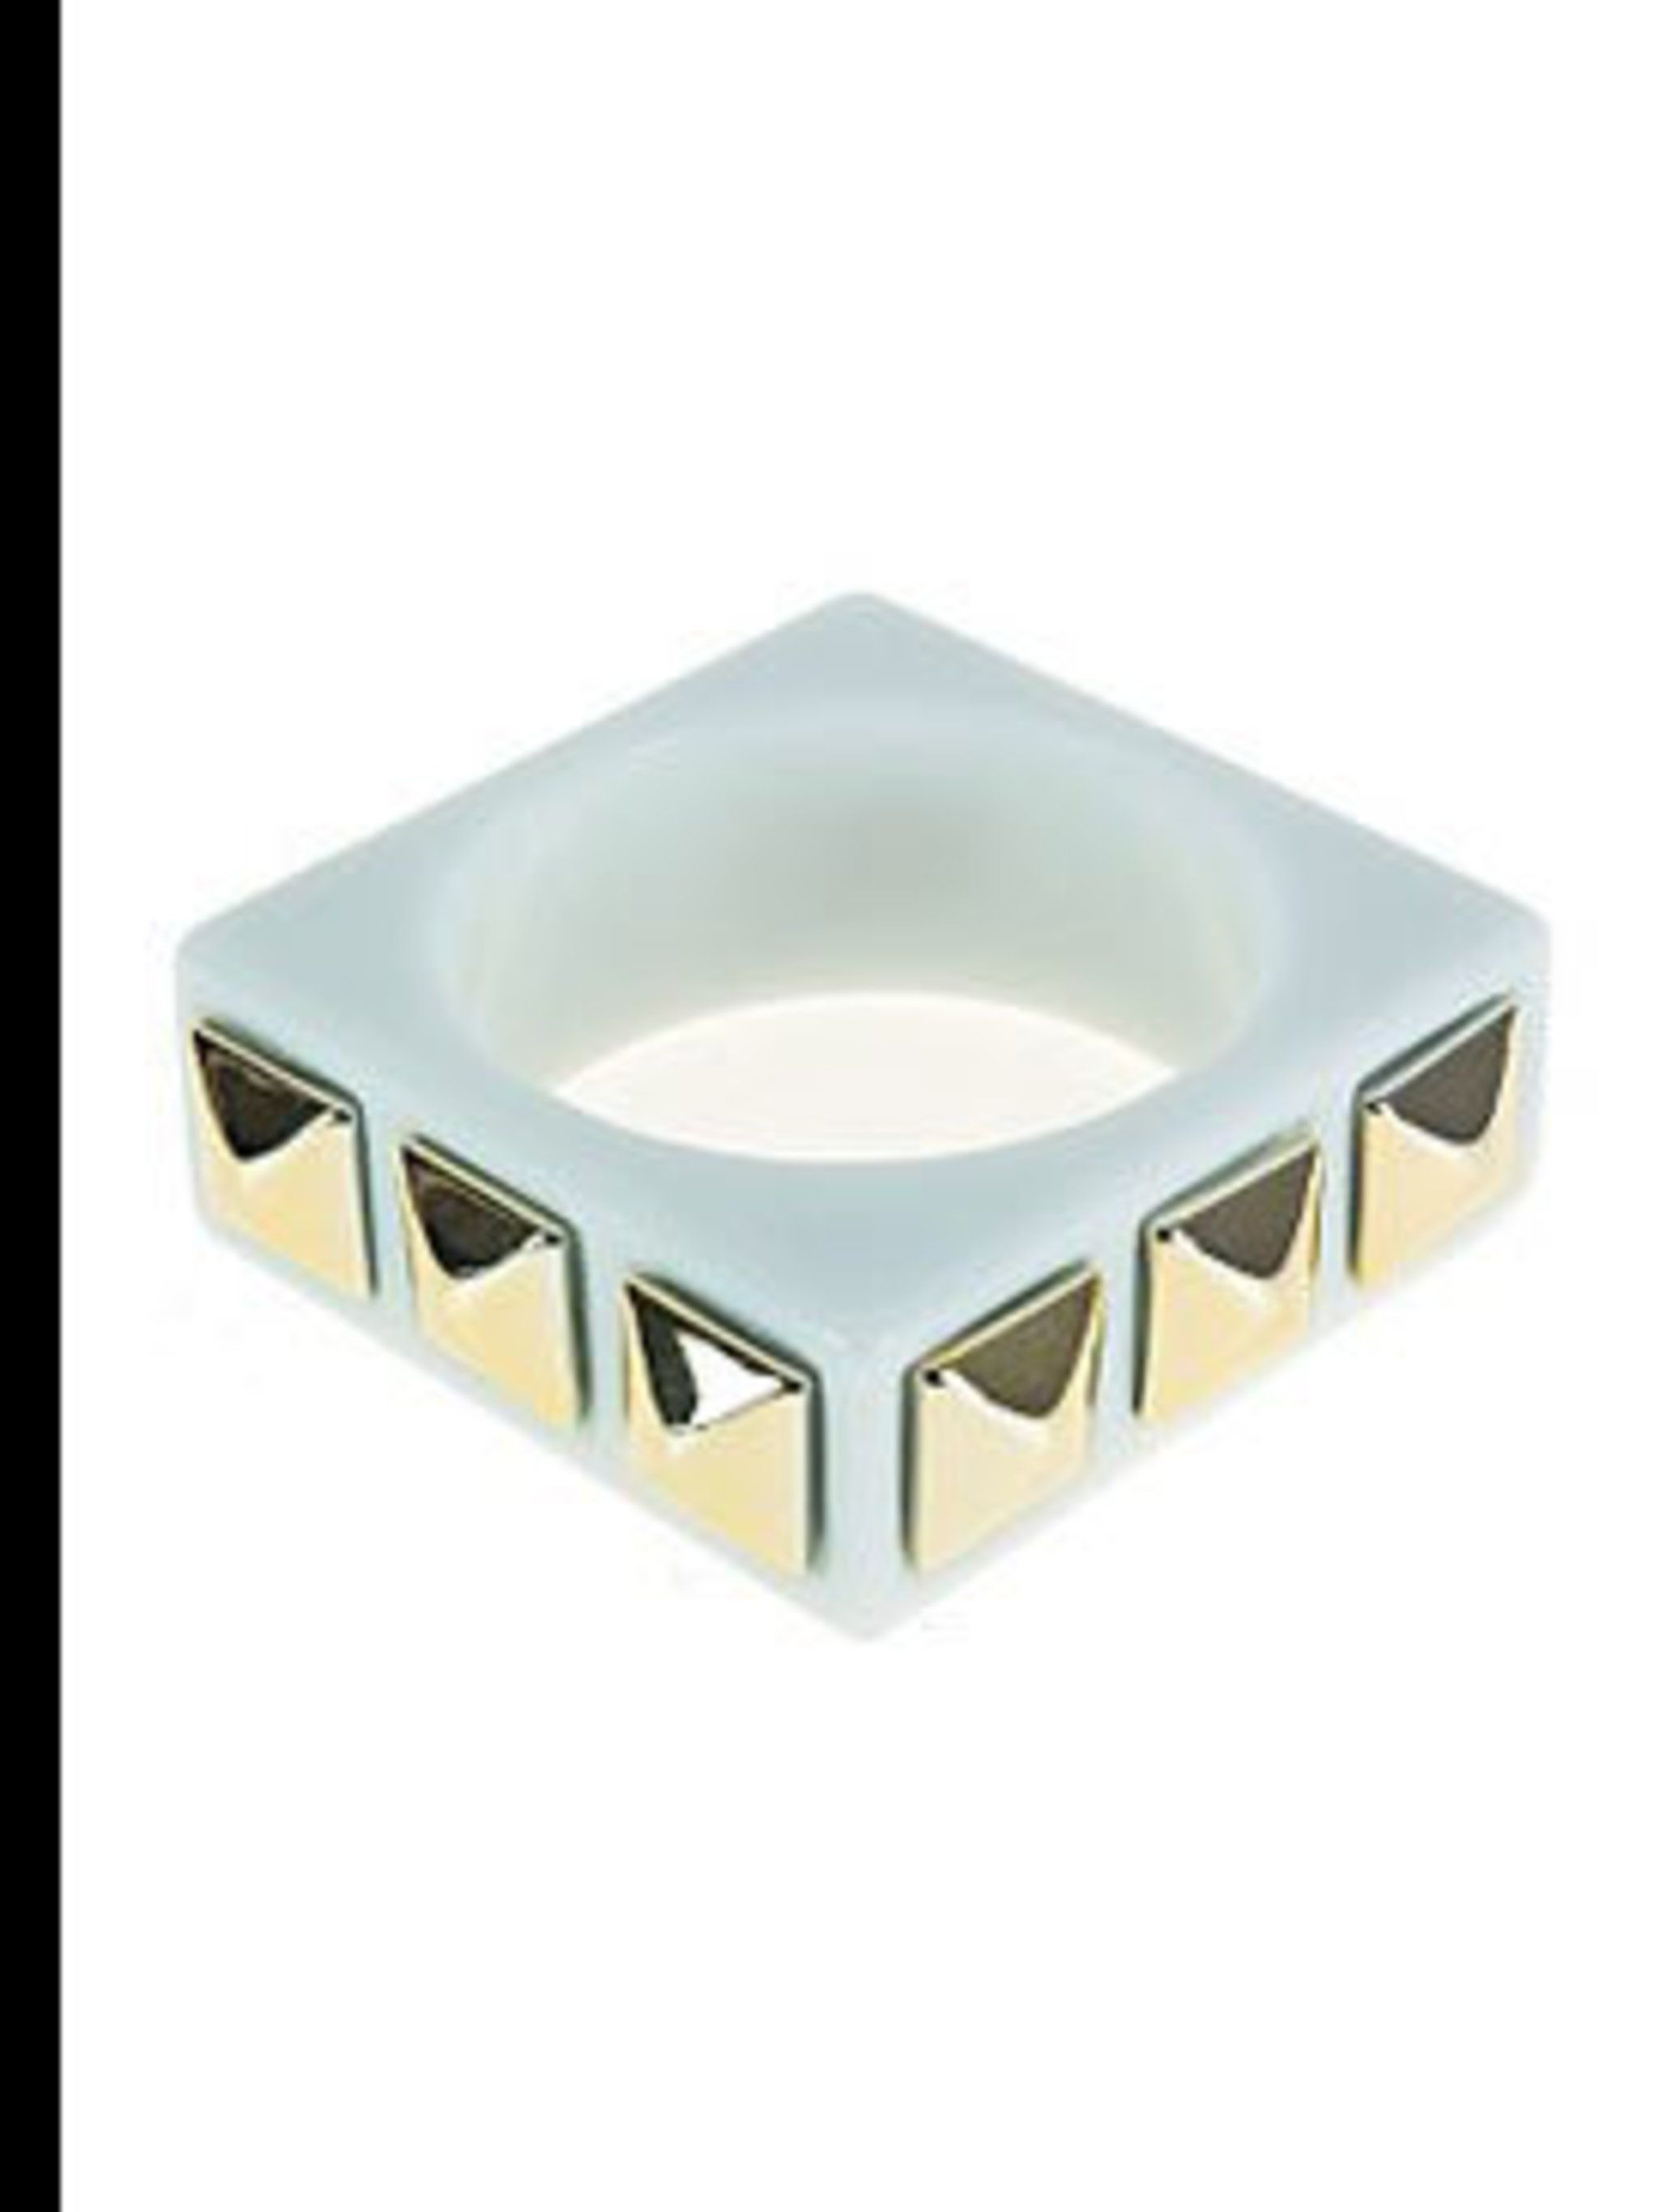 "<p>Square studded bangle, £14, by Therapy at <a href=""www.houseoffraser.co.uk"">House of Fraser</a></p>"